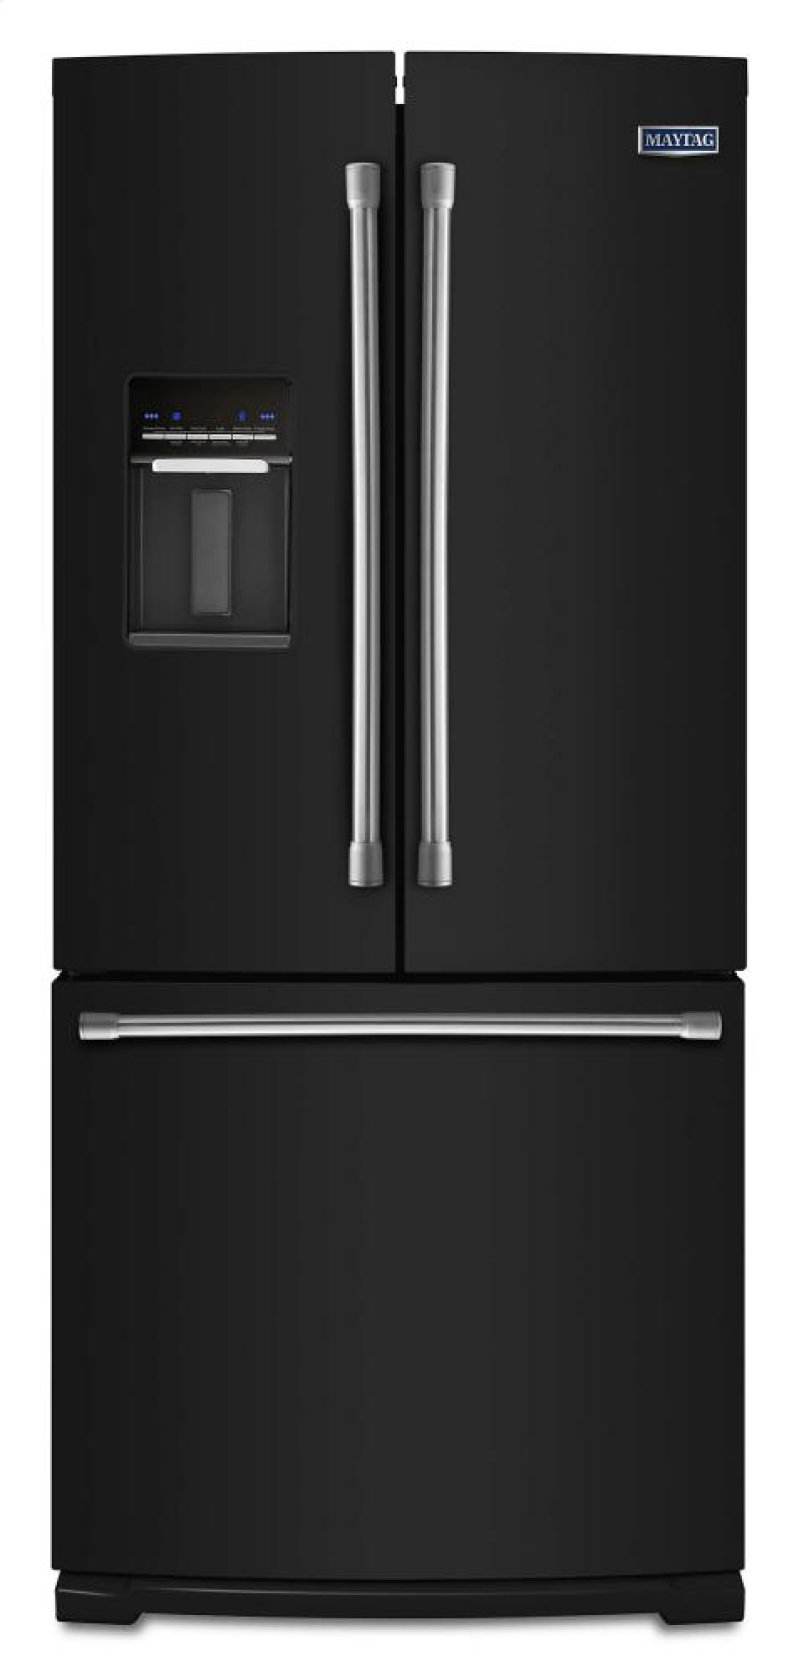 Mfw2055dre In Black By Maytag In Schenectady Ny 30 Inch Wide French Door Refrigerator With